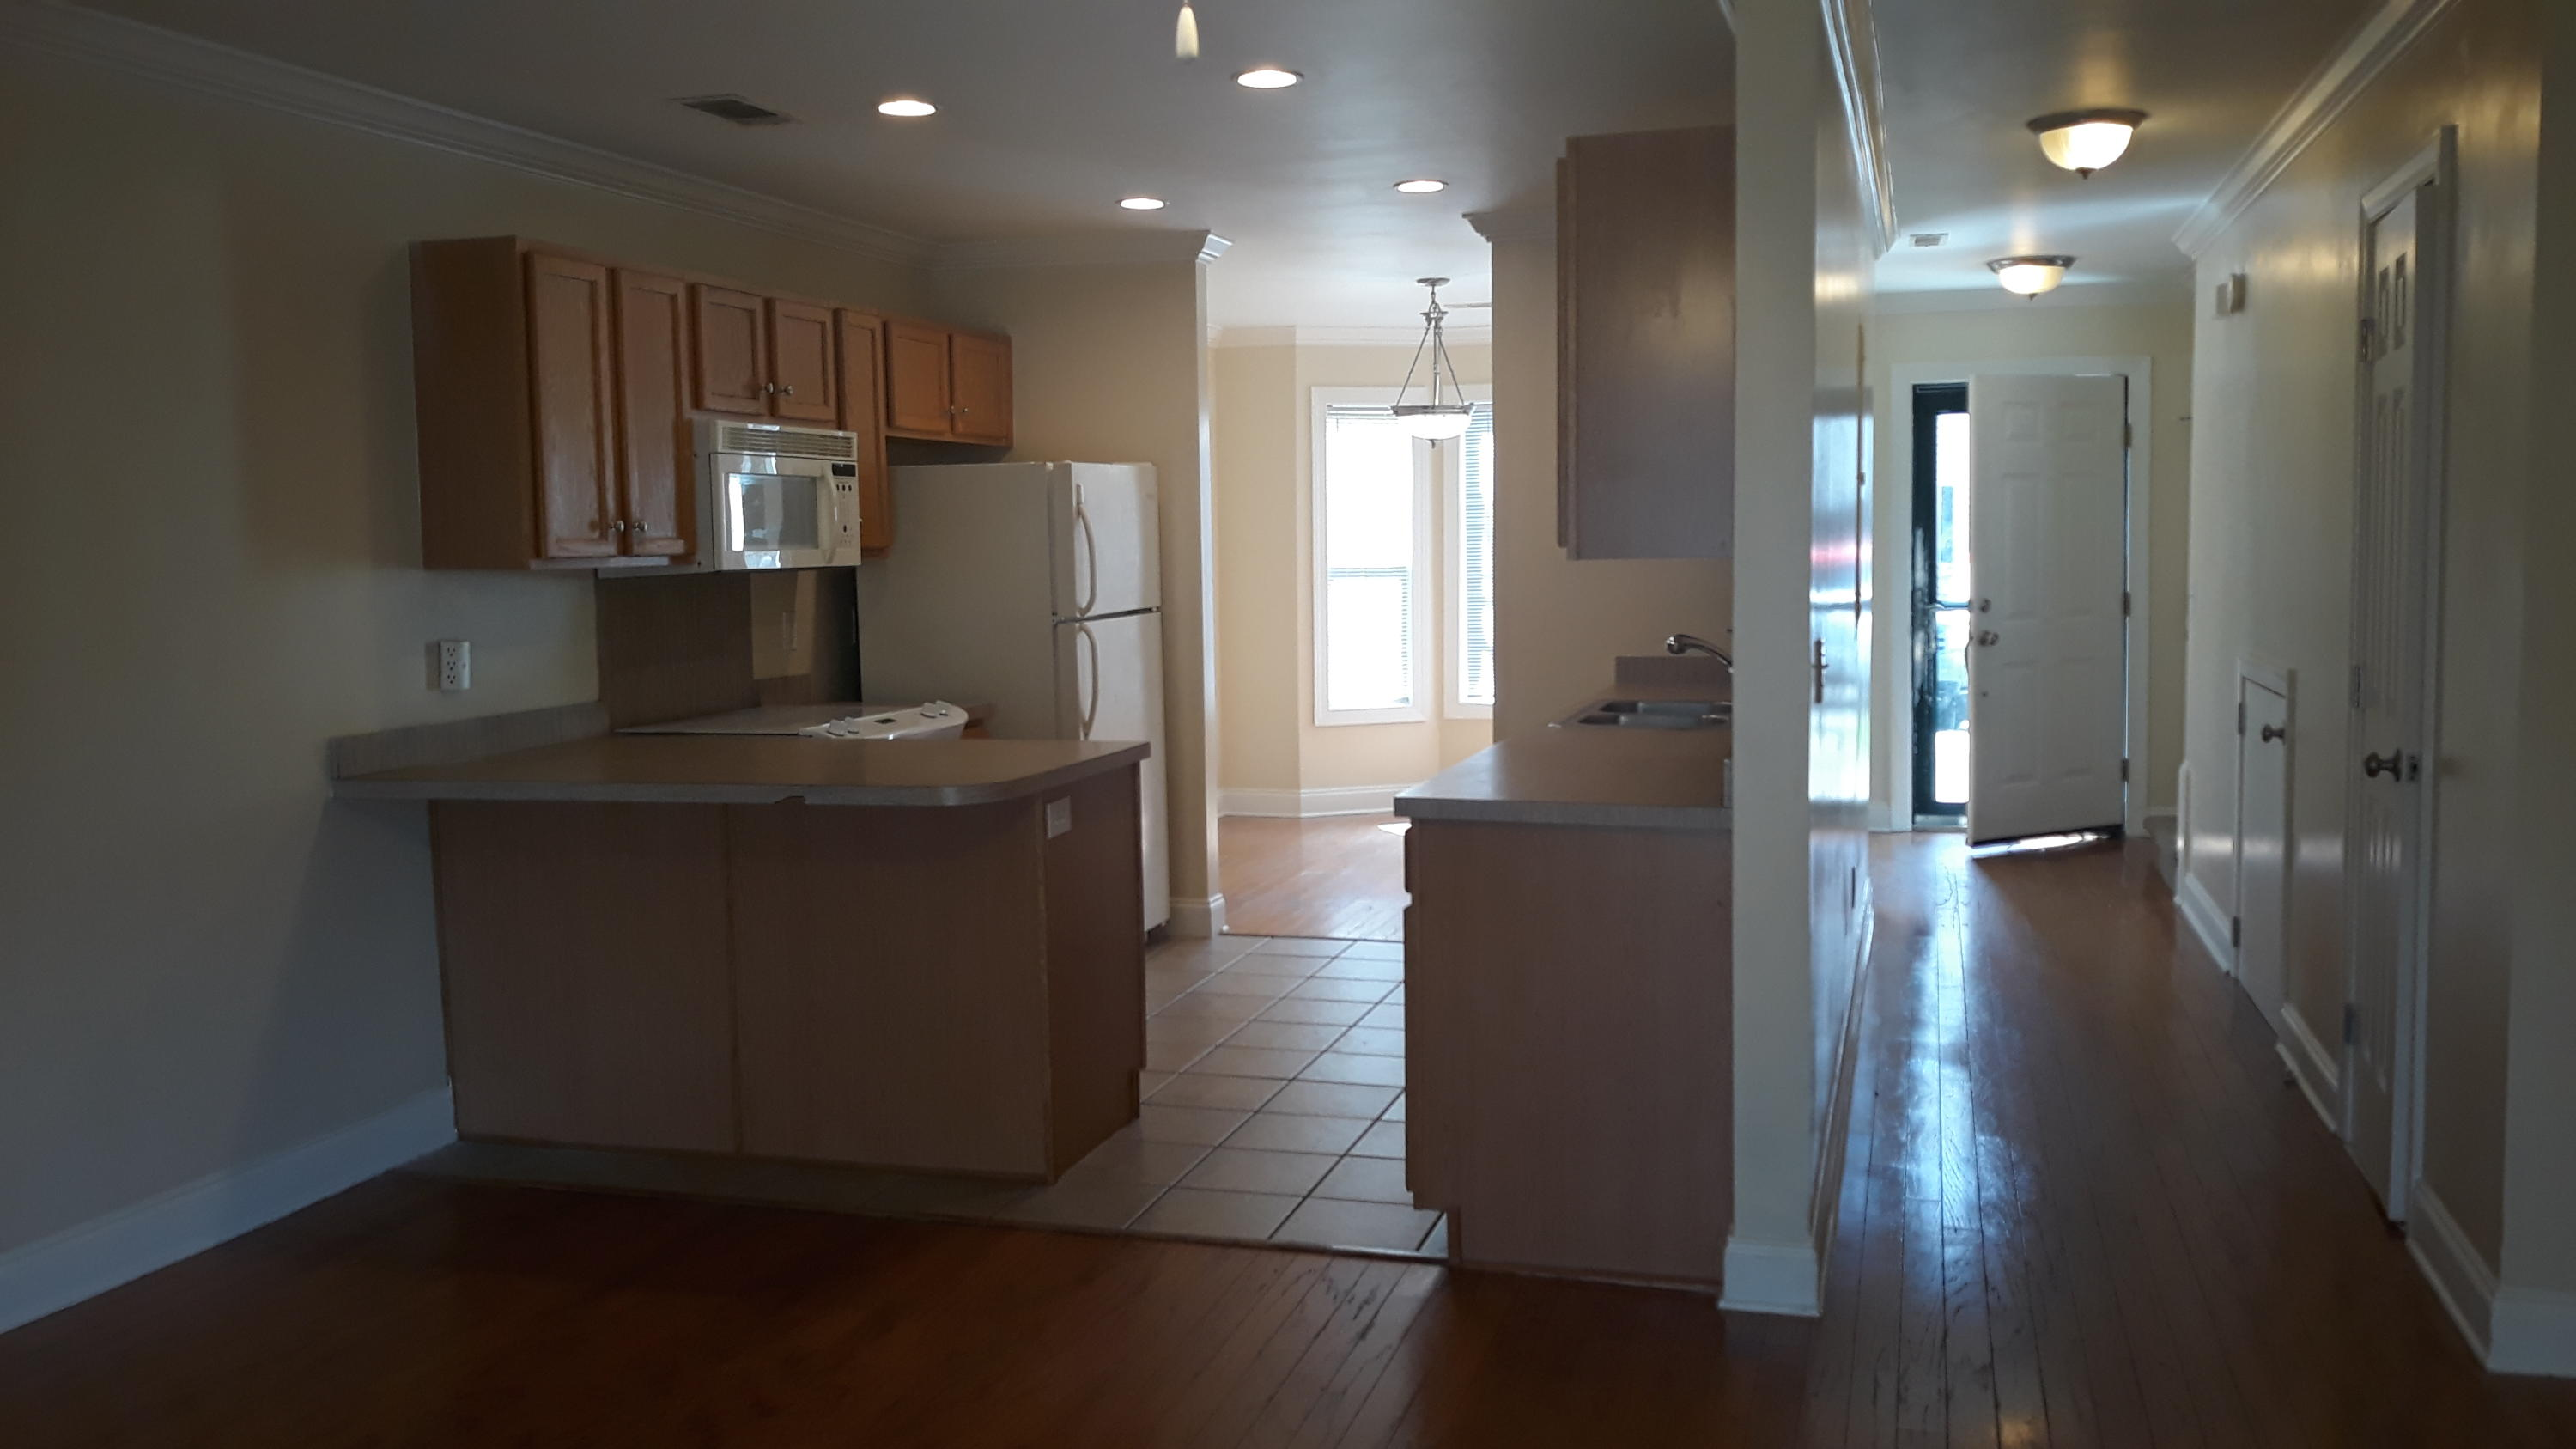 Radcliffe Place Homes For Sale - 4004 Radcliffe Place, Charleston, SC - 2